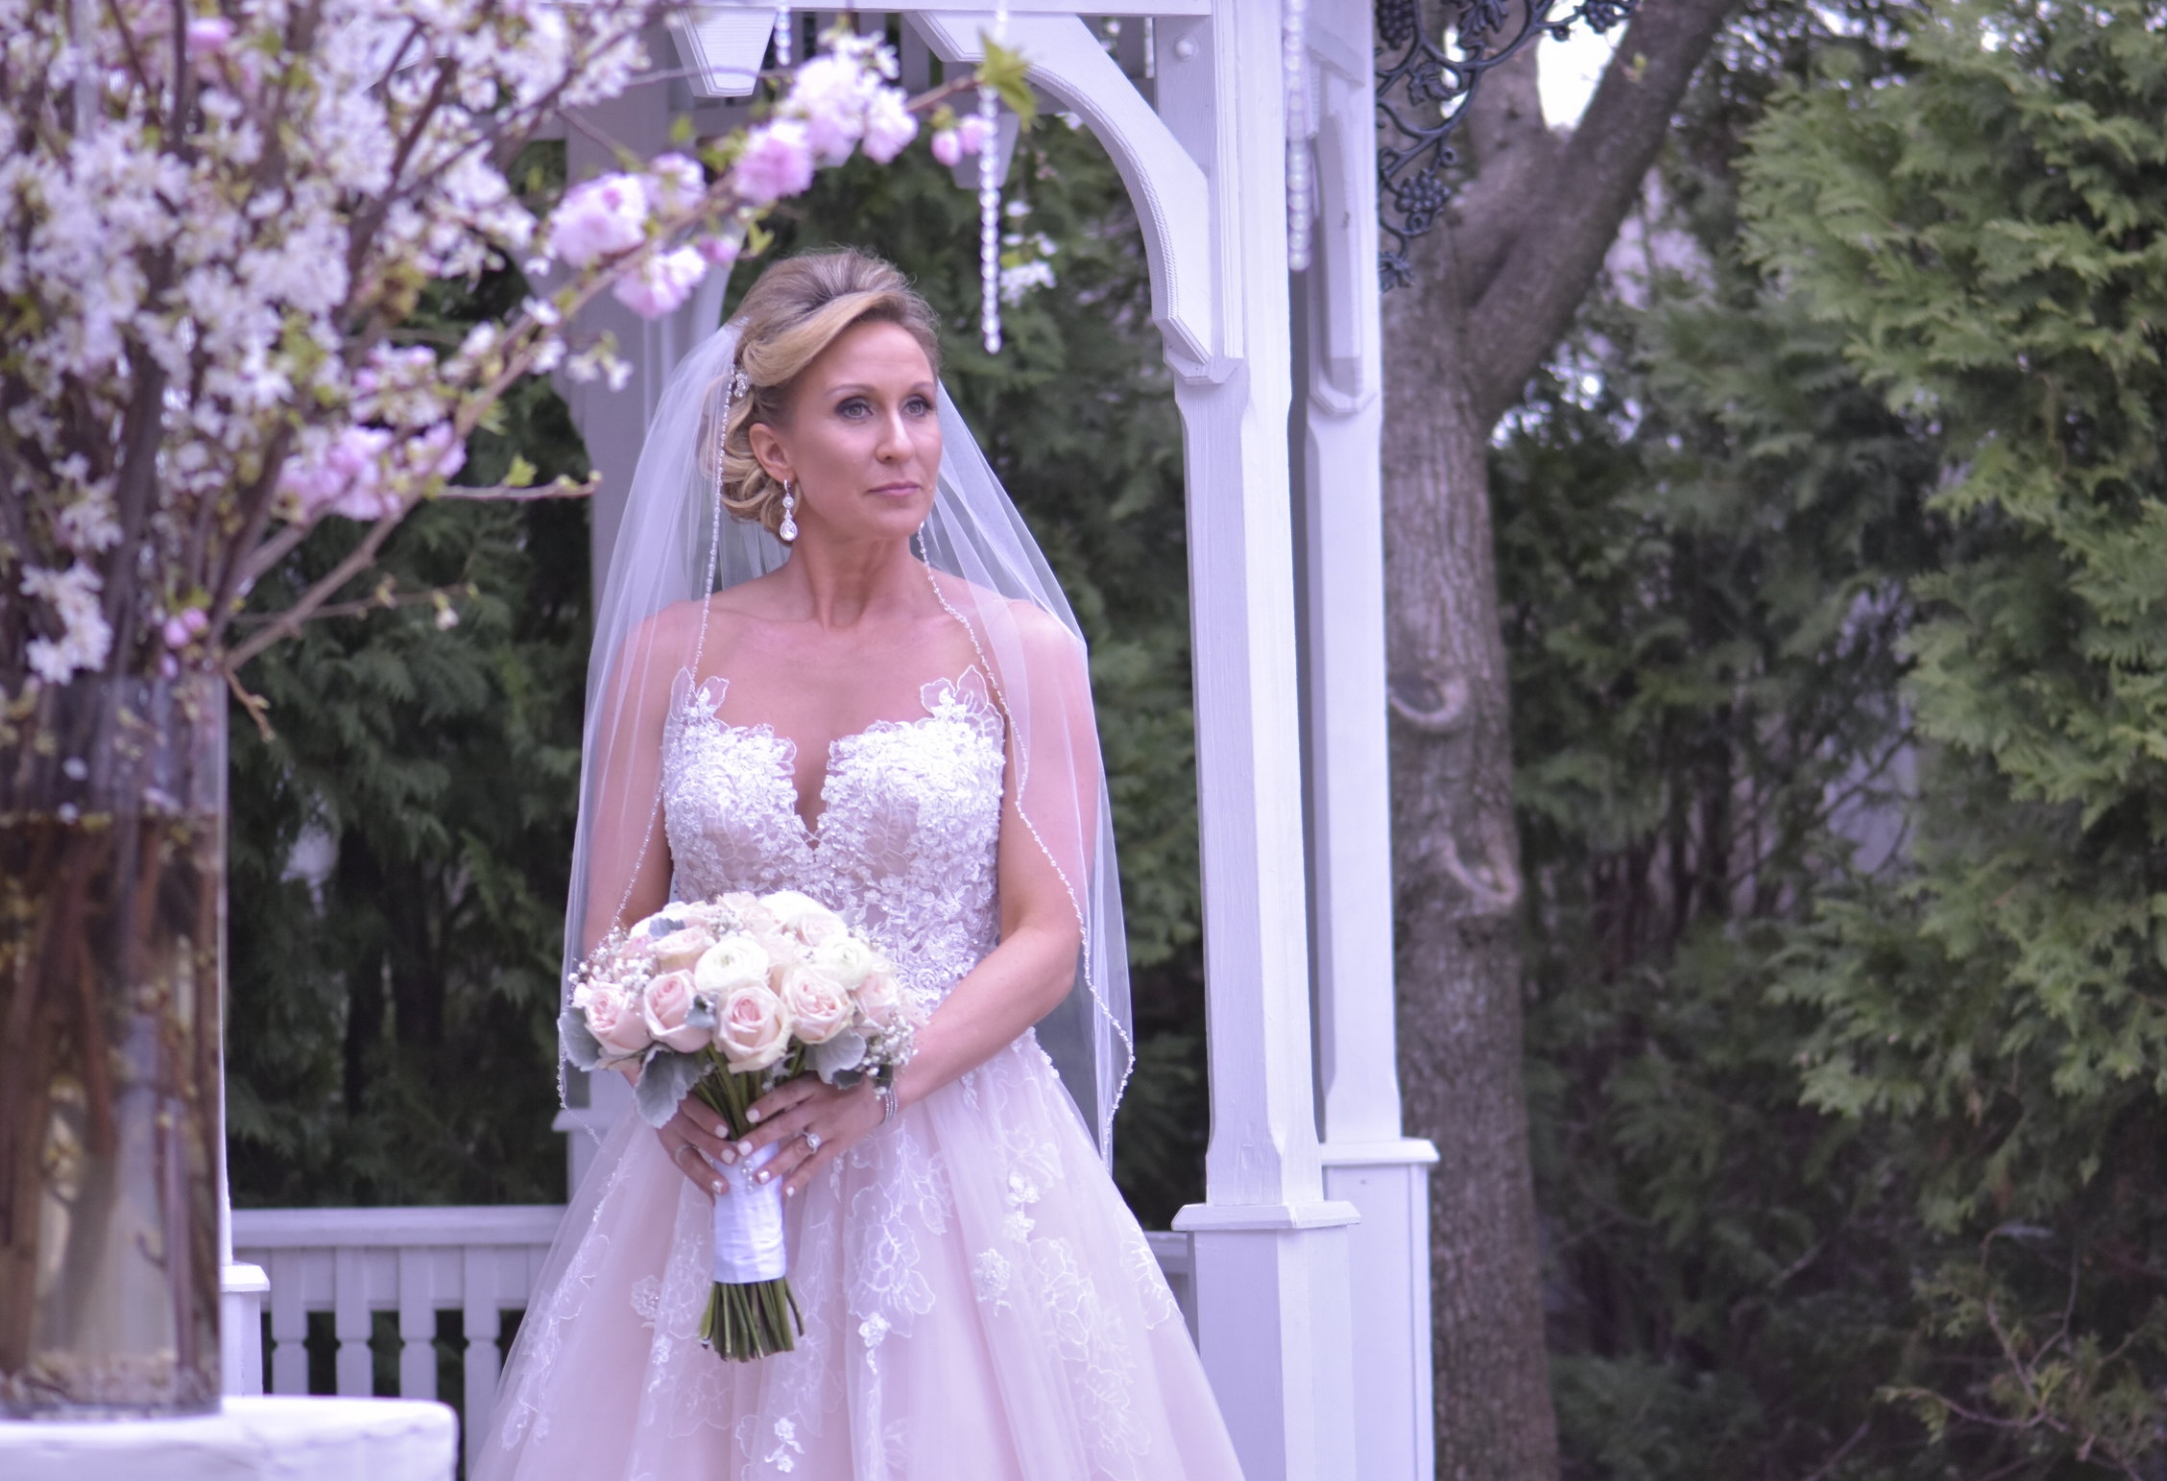 - A brides gaze as she is holding her bouquet of pink roses.